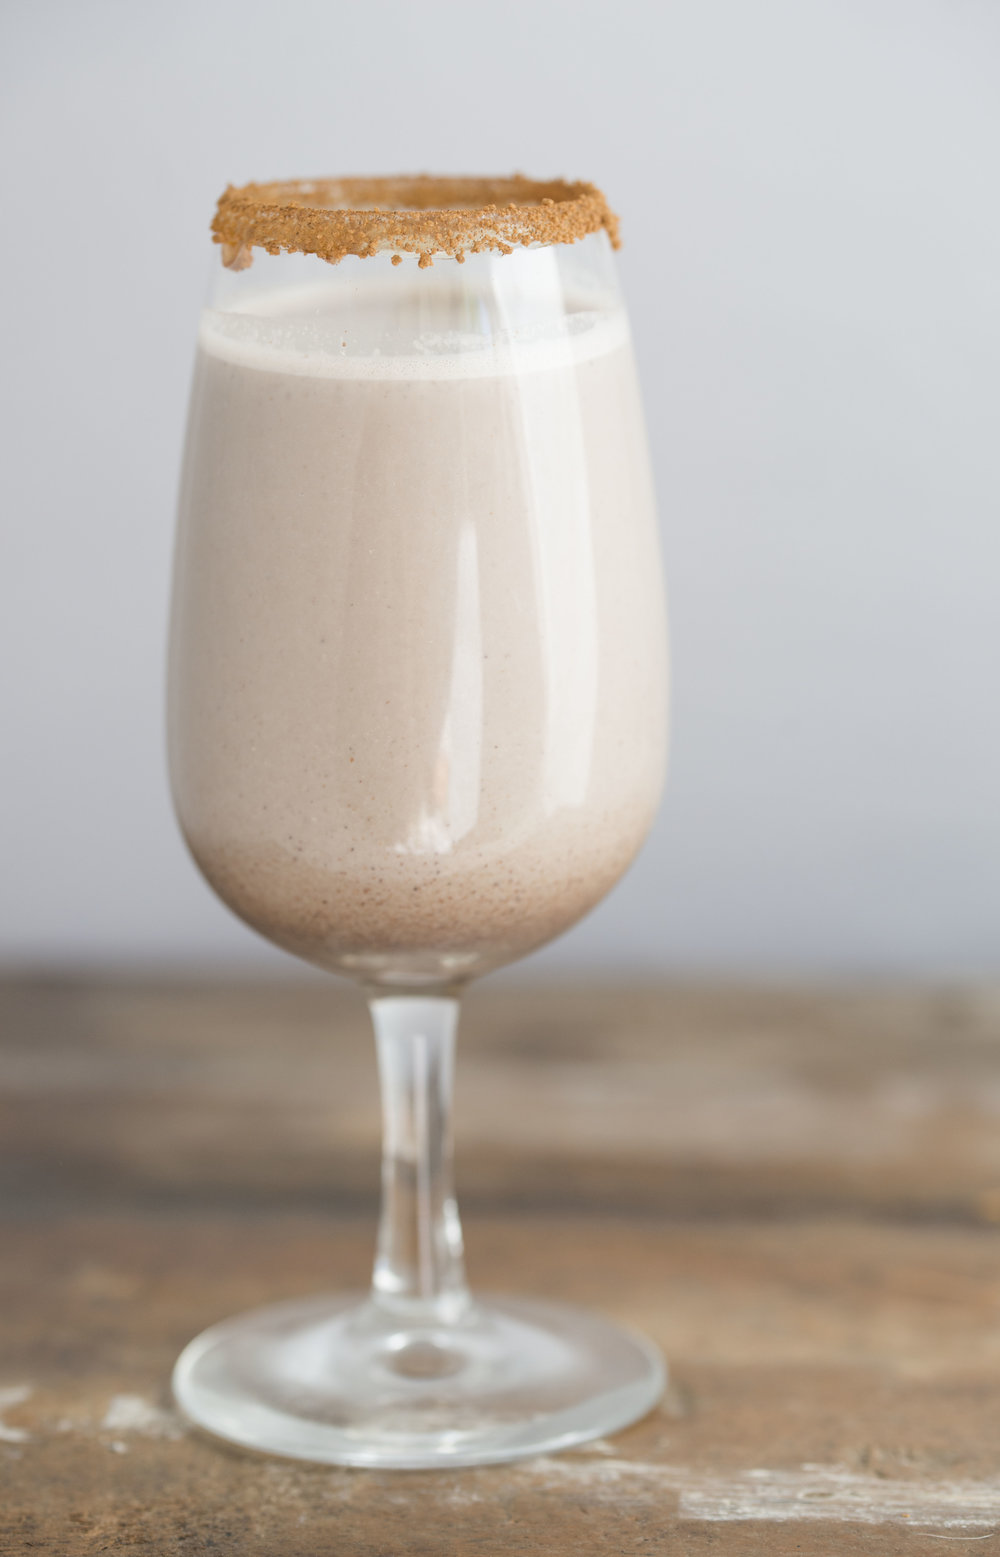 mixed-and-measured-raw-chocolate-cashew-milk-3.jpg